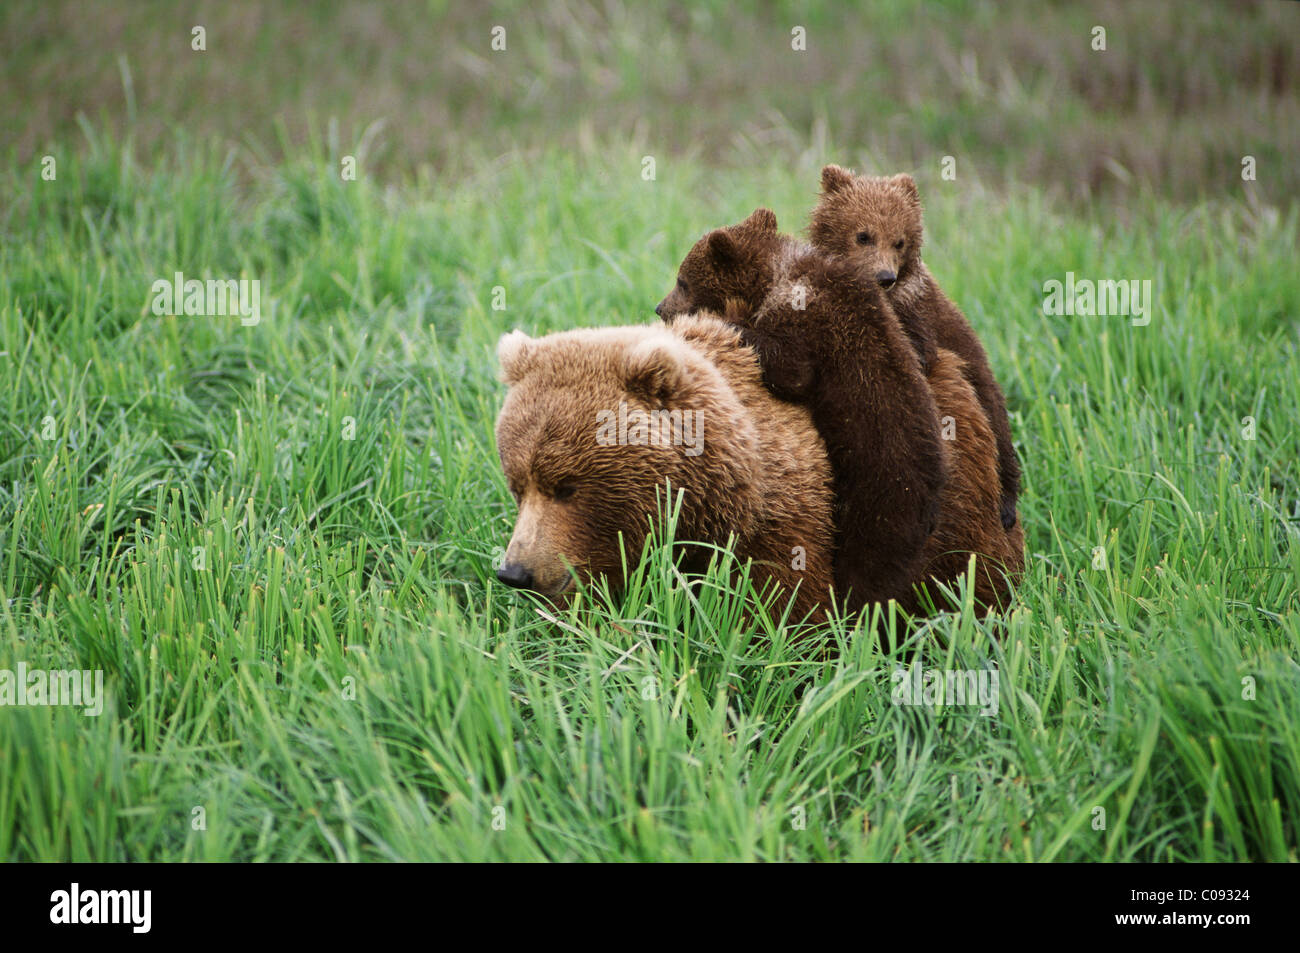 Two brown bear cubs ride on their mother's back through sedge grasses near McNeil River in McNeil River State - Stock Image